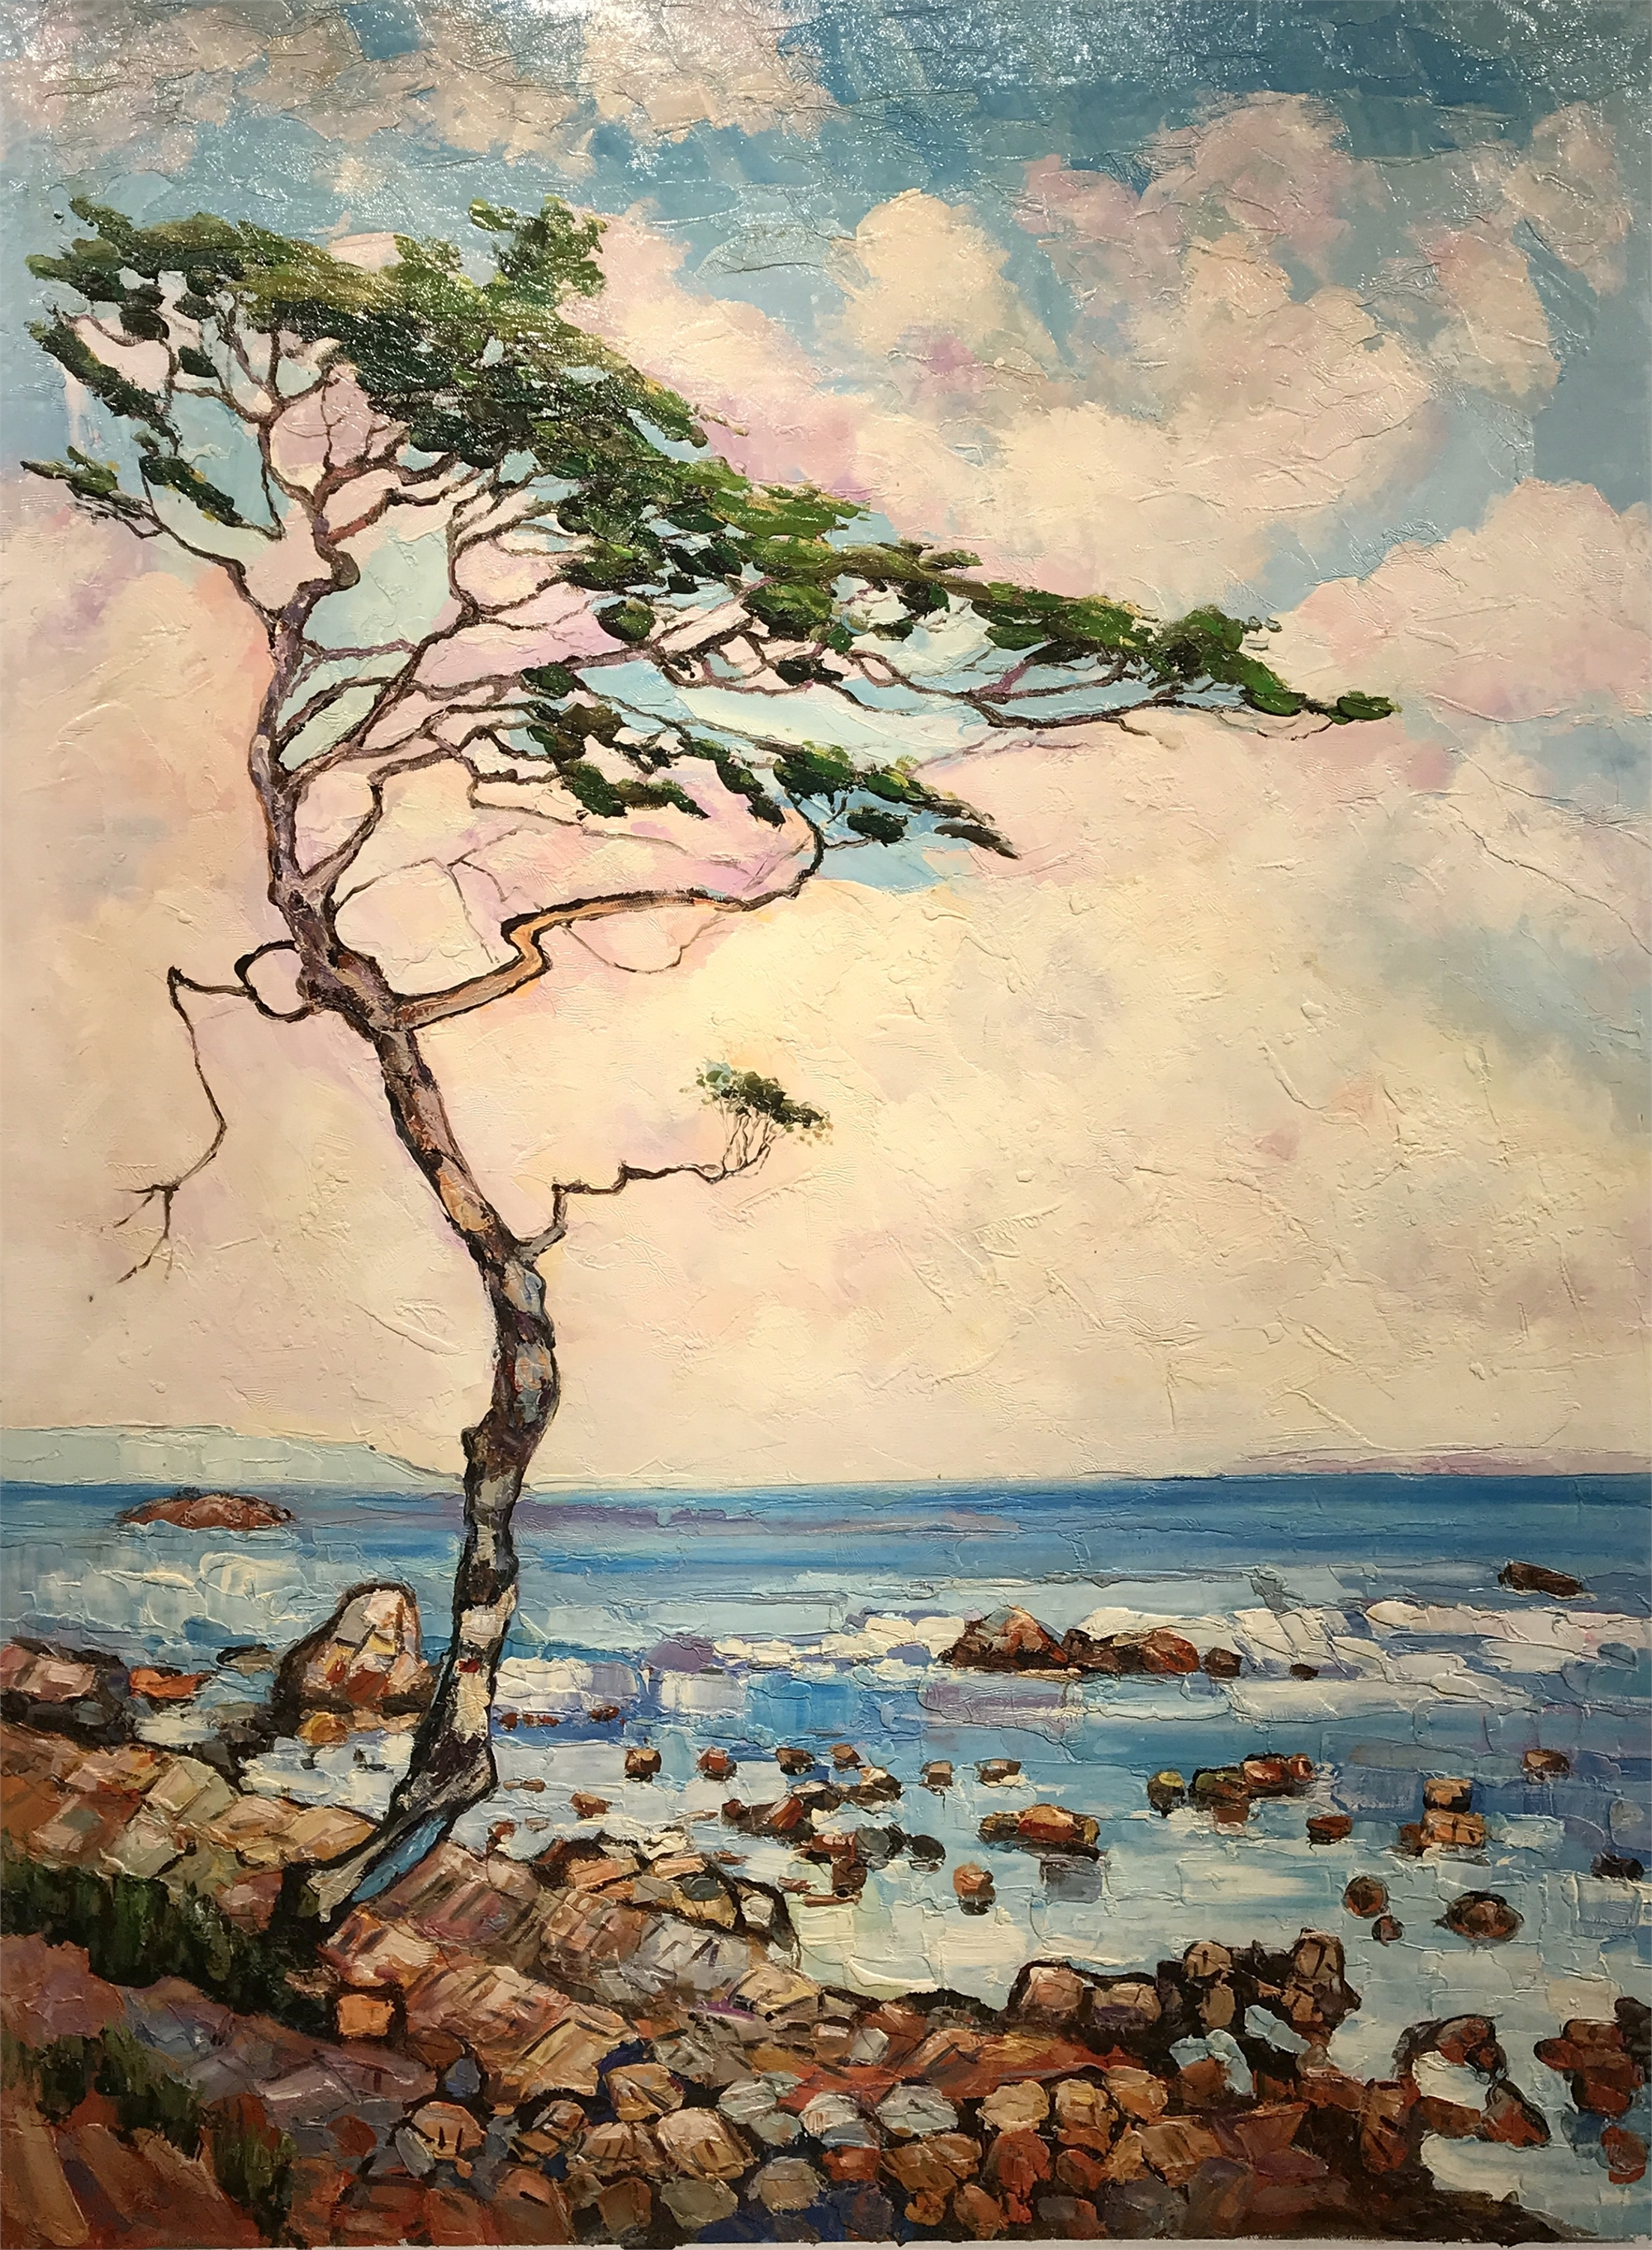 LONE TREE ON ROCKY SHORE by VARIOUS WORKS